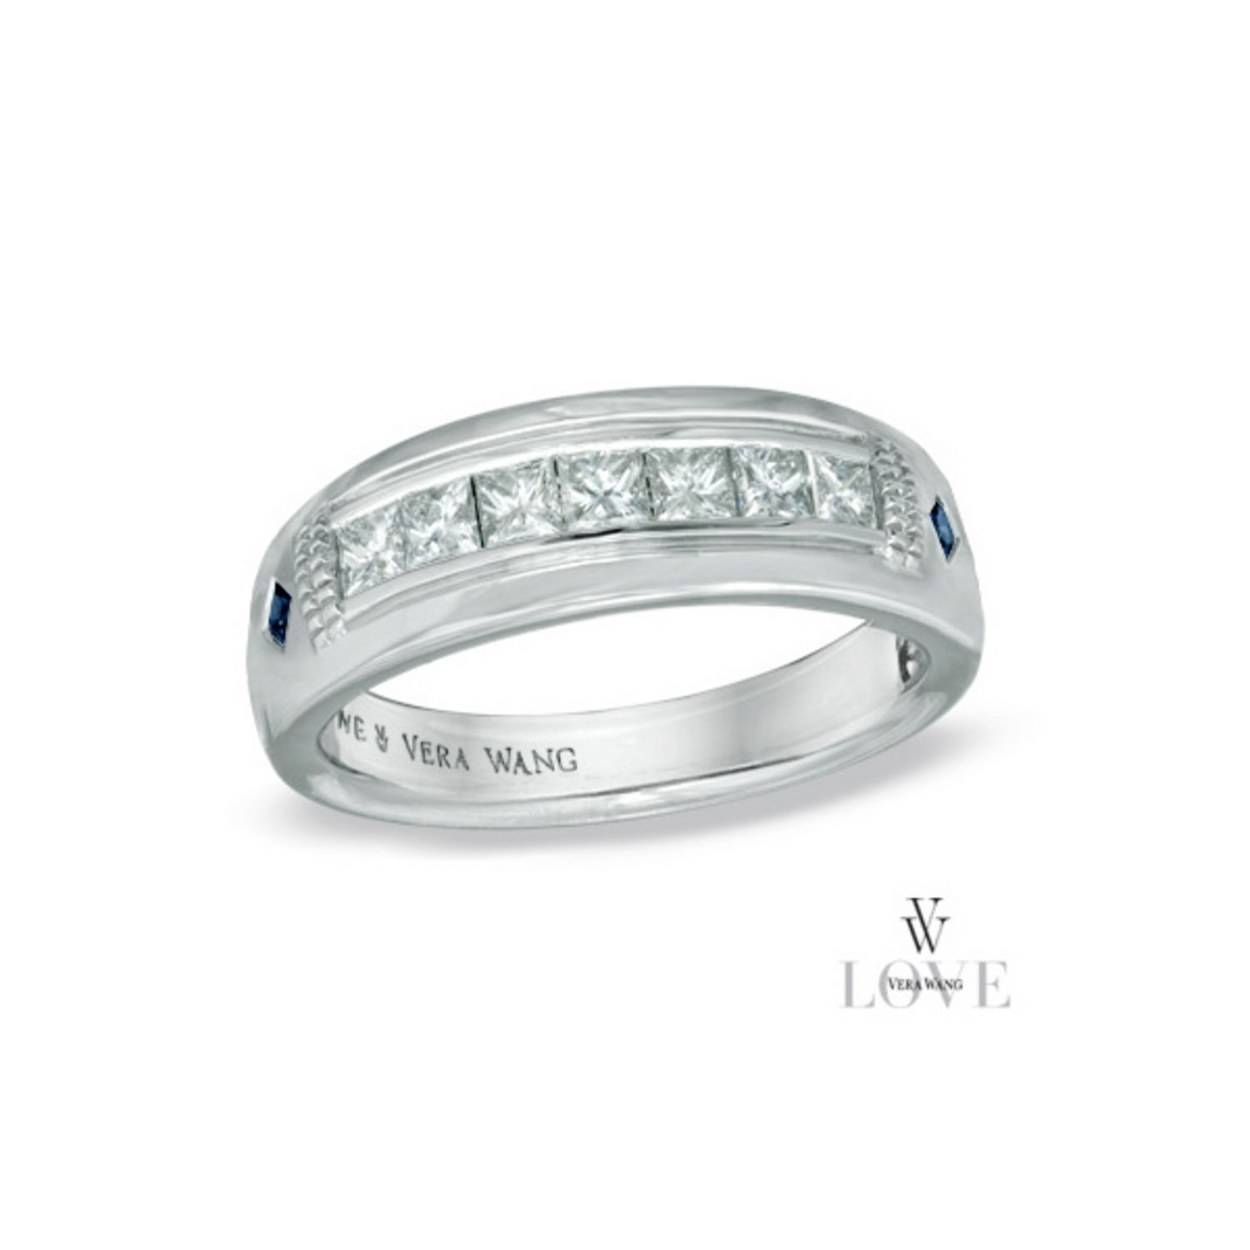 15 Men's Wedding Bands Your Groom Won't Want To Take Off | Glamour With Regard To Zales Men's Diamond Wedding Bands (View 1 of 15)